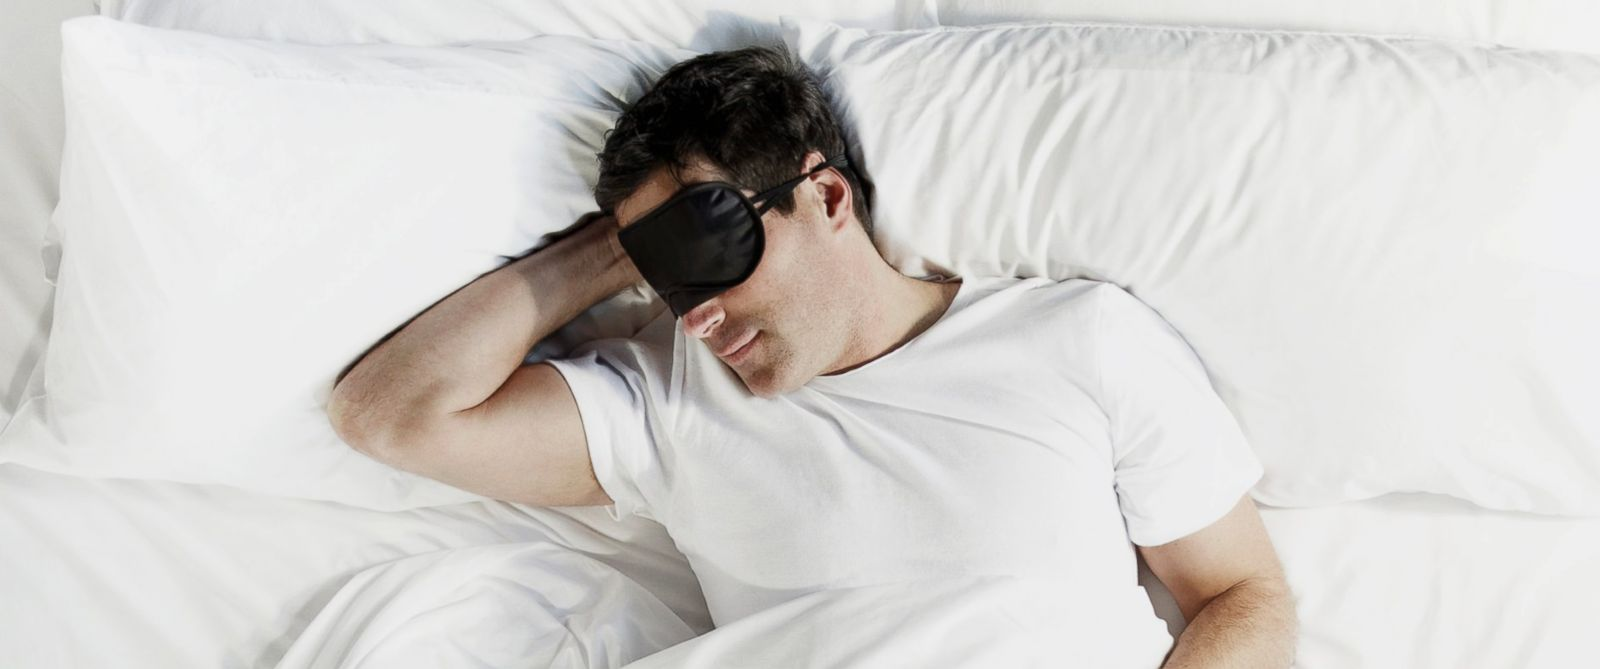 PHOTO: A man sleeps wearing an eye mask in this undated stock photo.